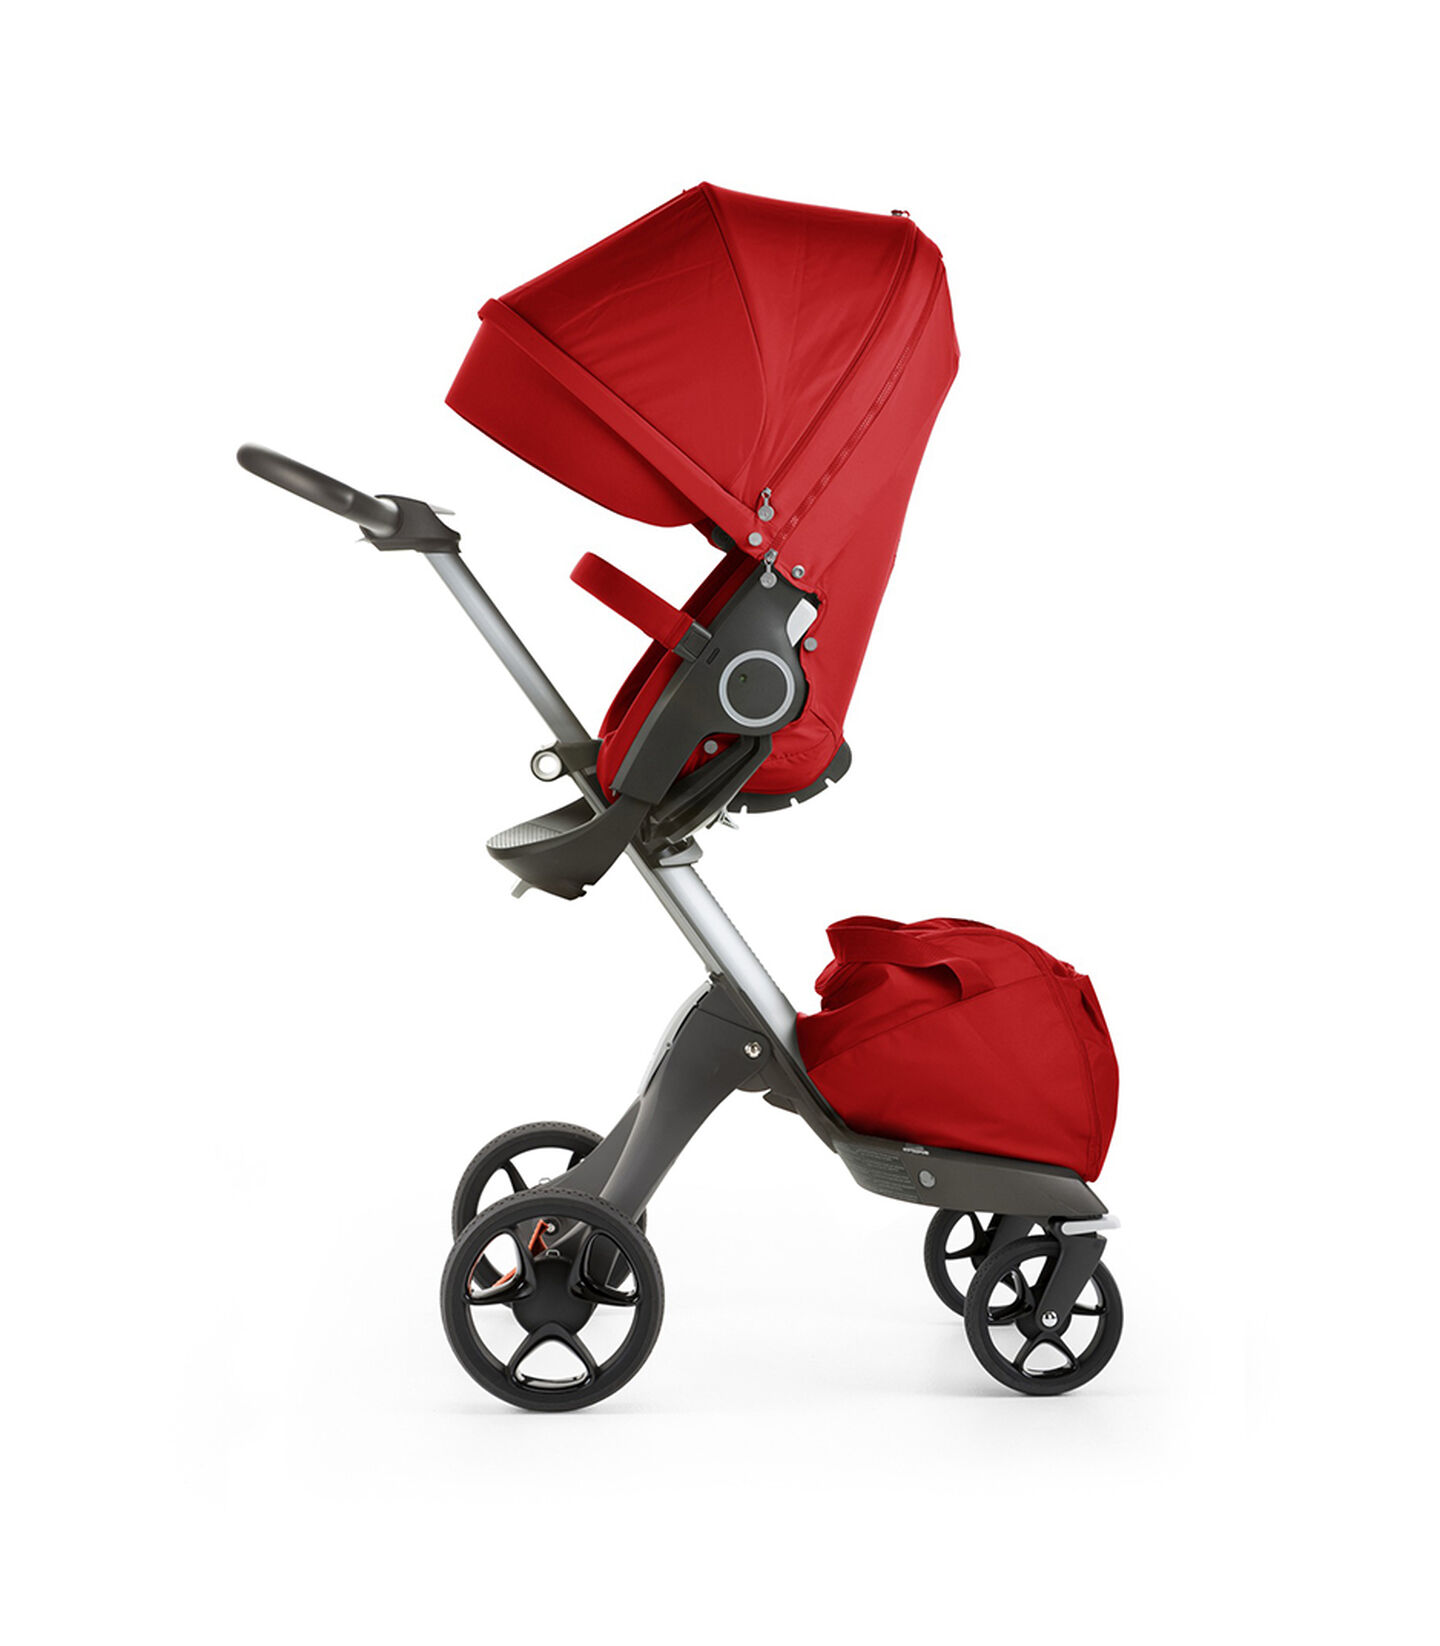 Stokke® Xplory® with Stokke® Stroller Seat, Red. New wheels 2016.